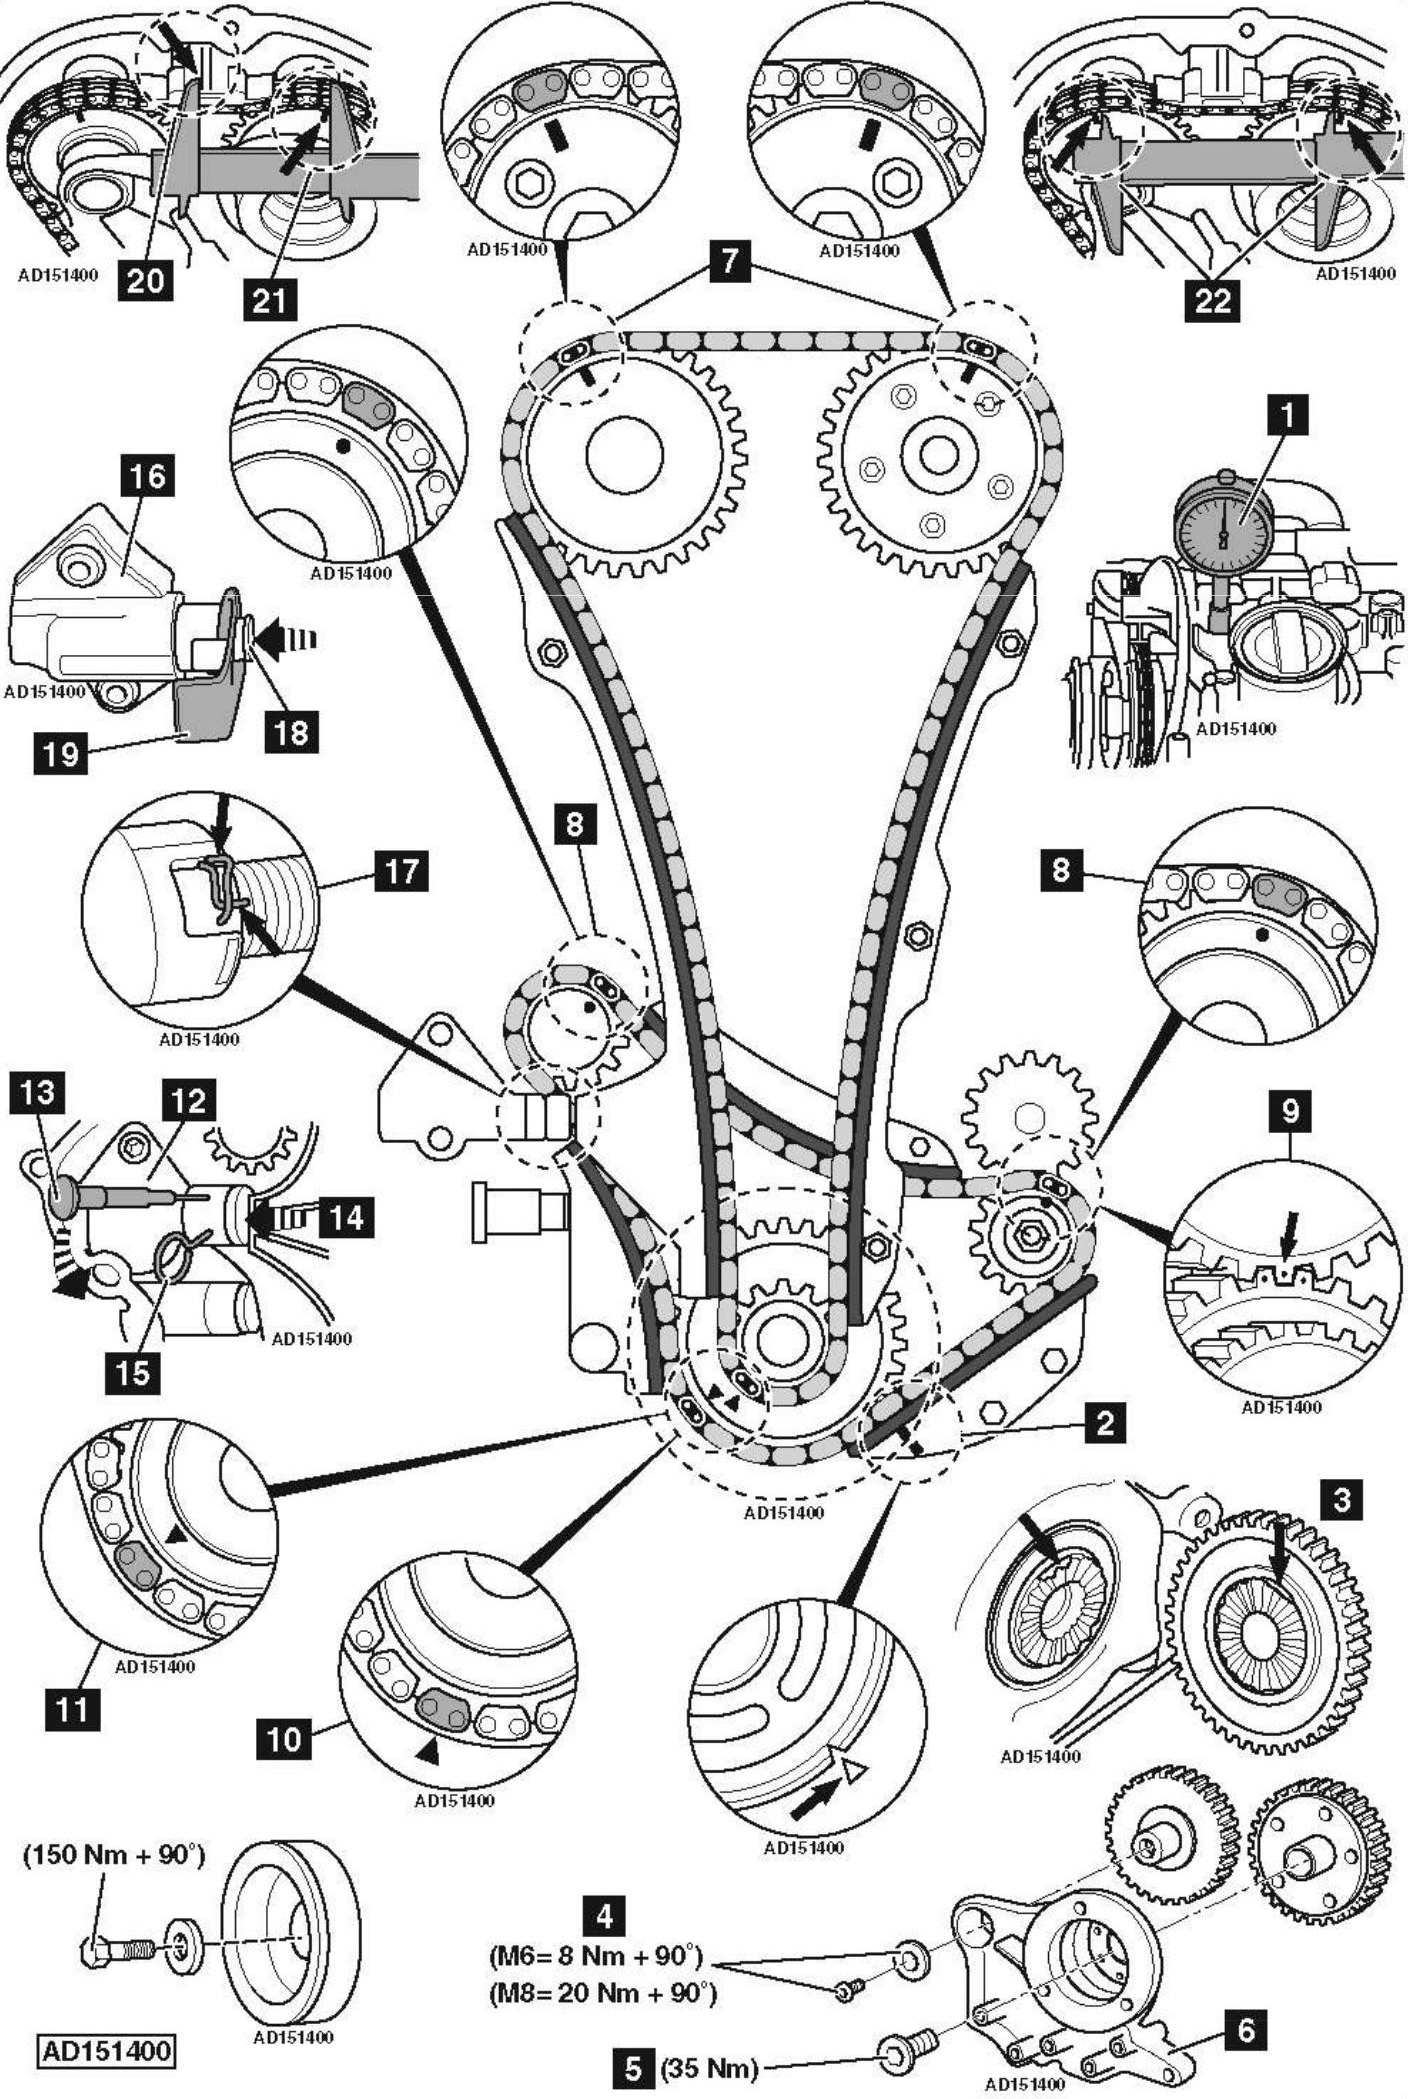 Replace-timing-chain-on-Audi-A5-8T-2-0-TFSI-2009